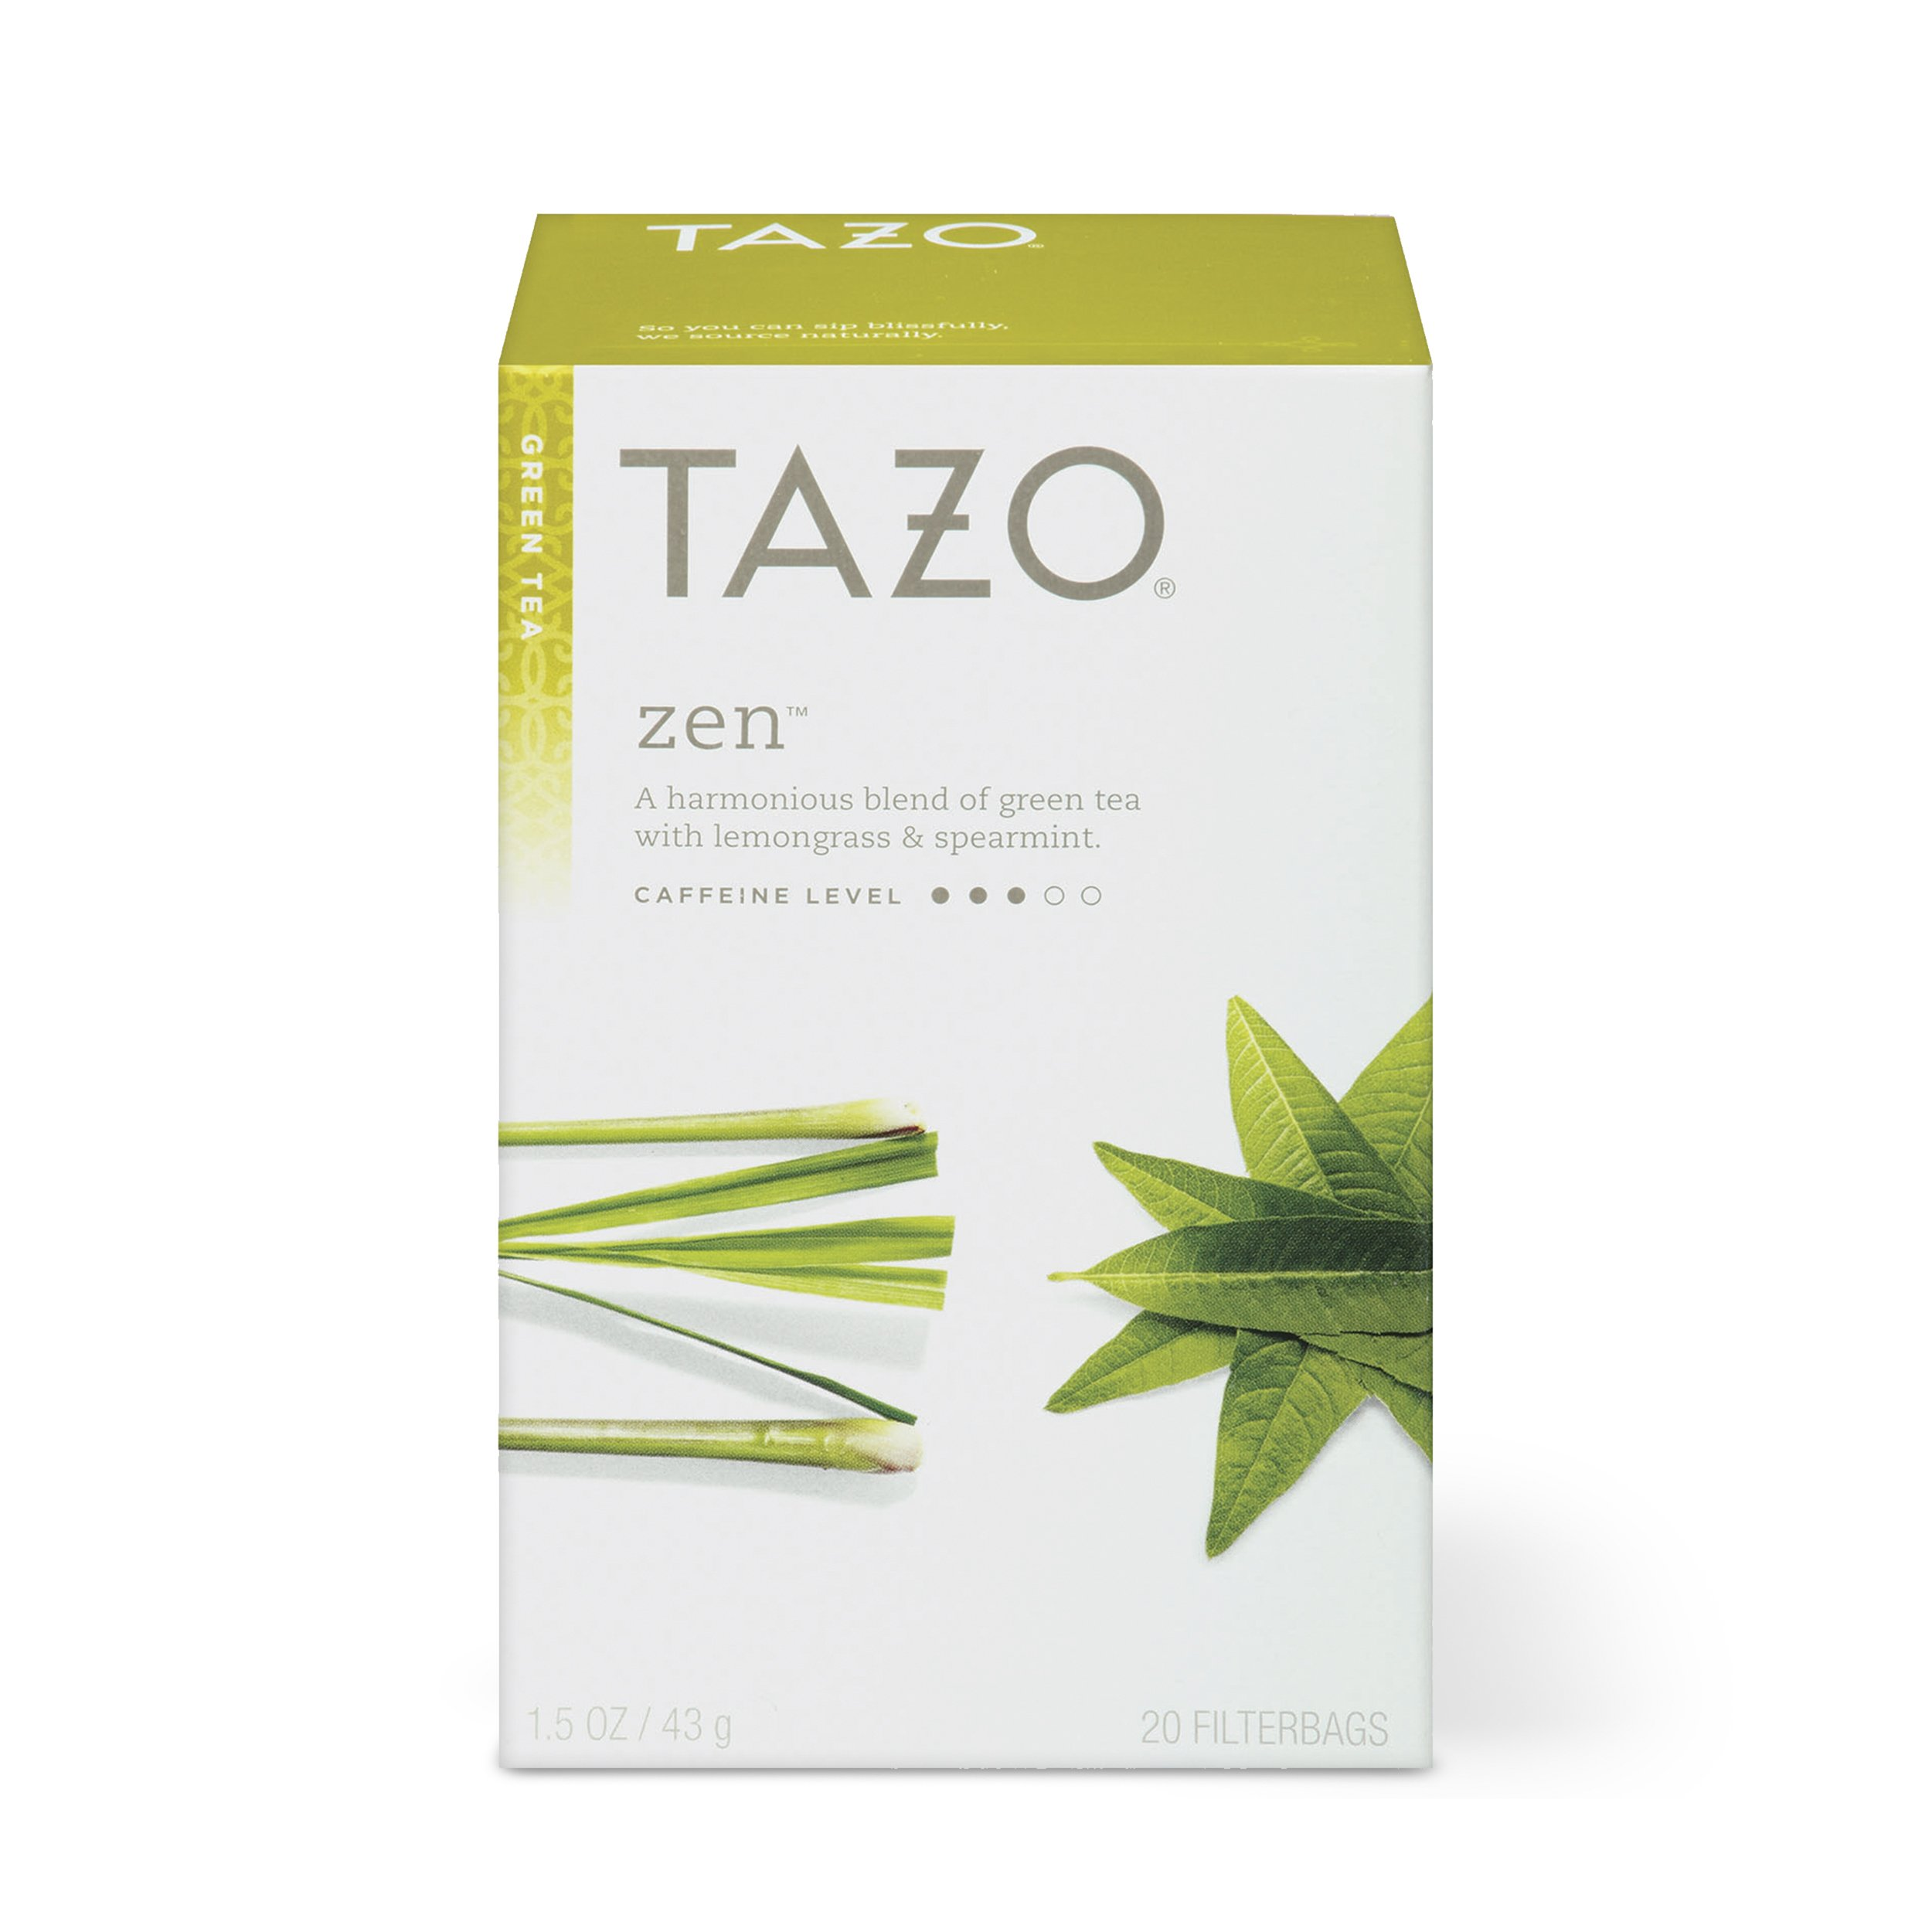 Tazo Zen Green Tea Filterbags, 20 Count (Pack of 6)